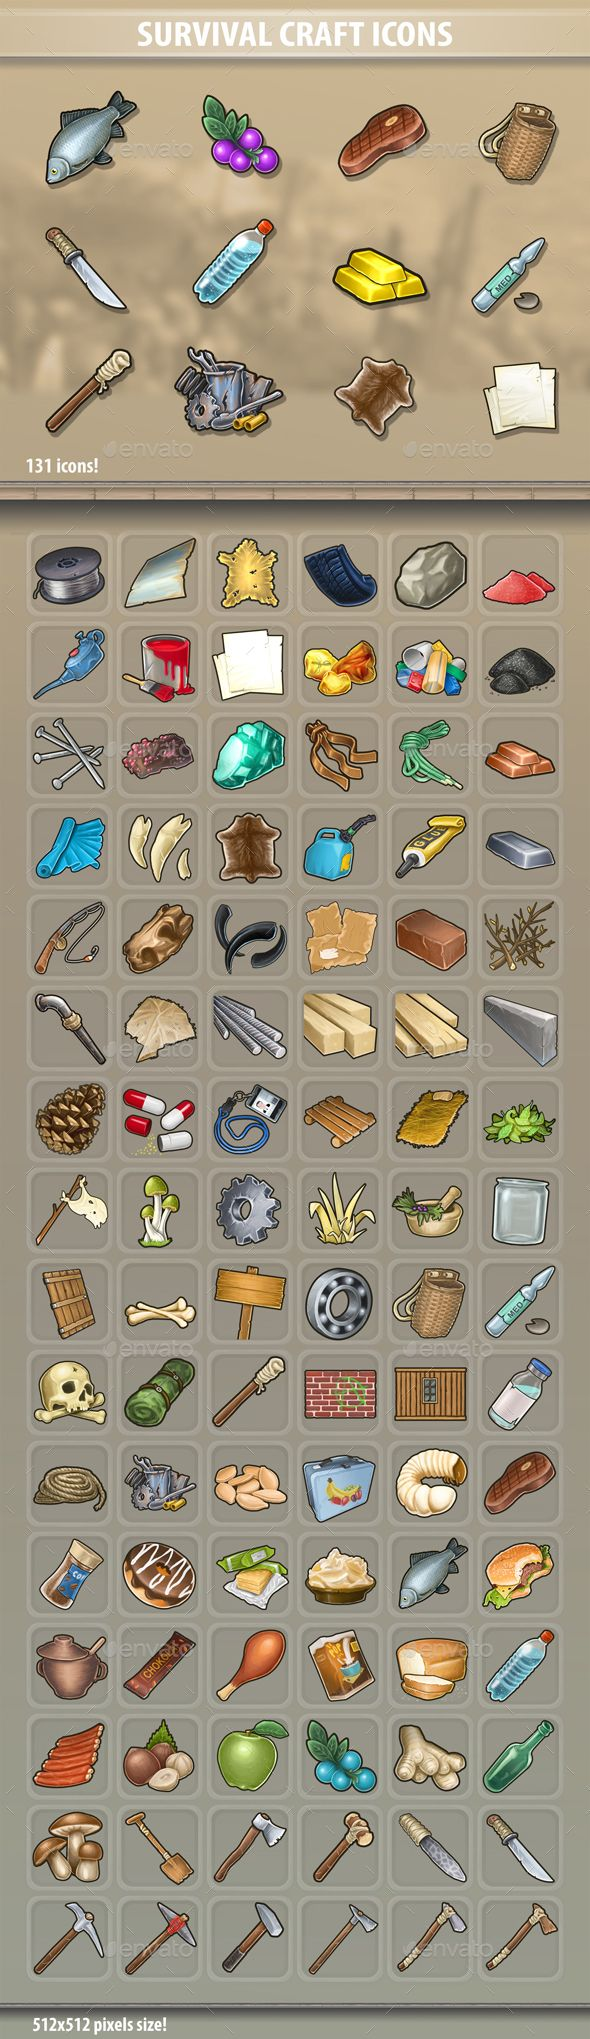 Survival Craft Icons Game card design, Pixel art games, Icon